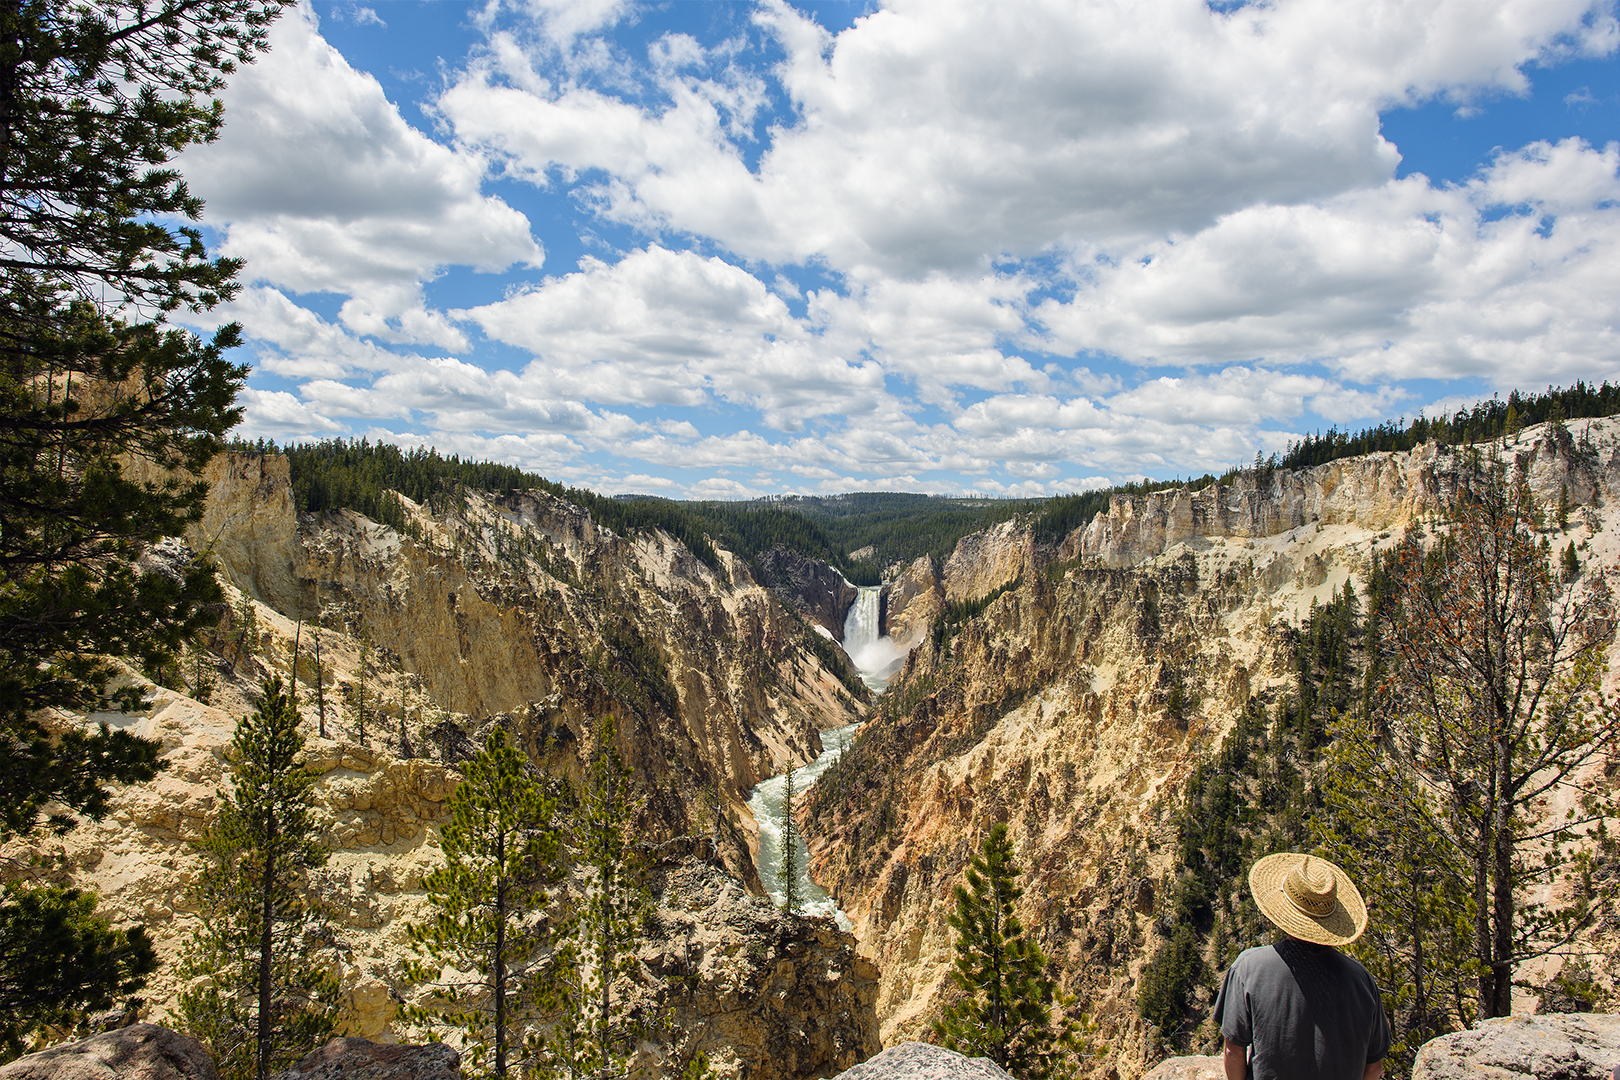 Lower Falls of the Yellowstone River, Artist Point